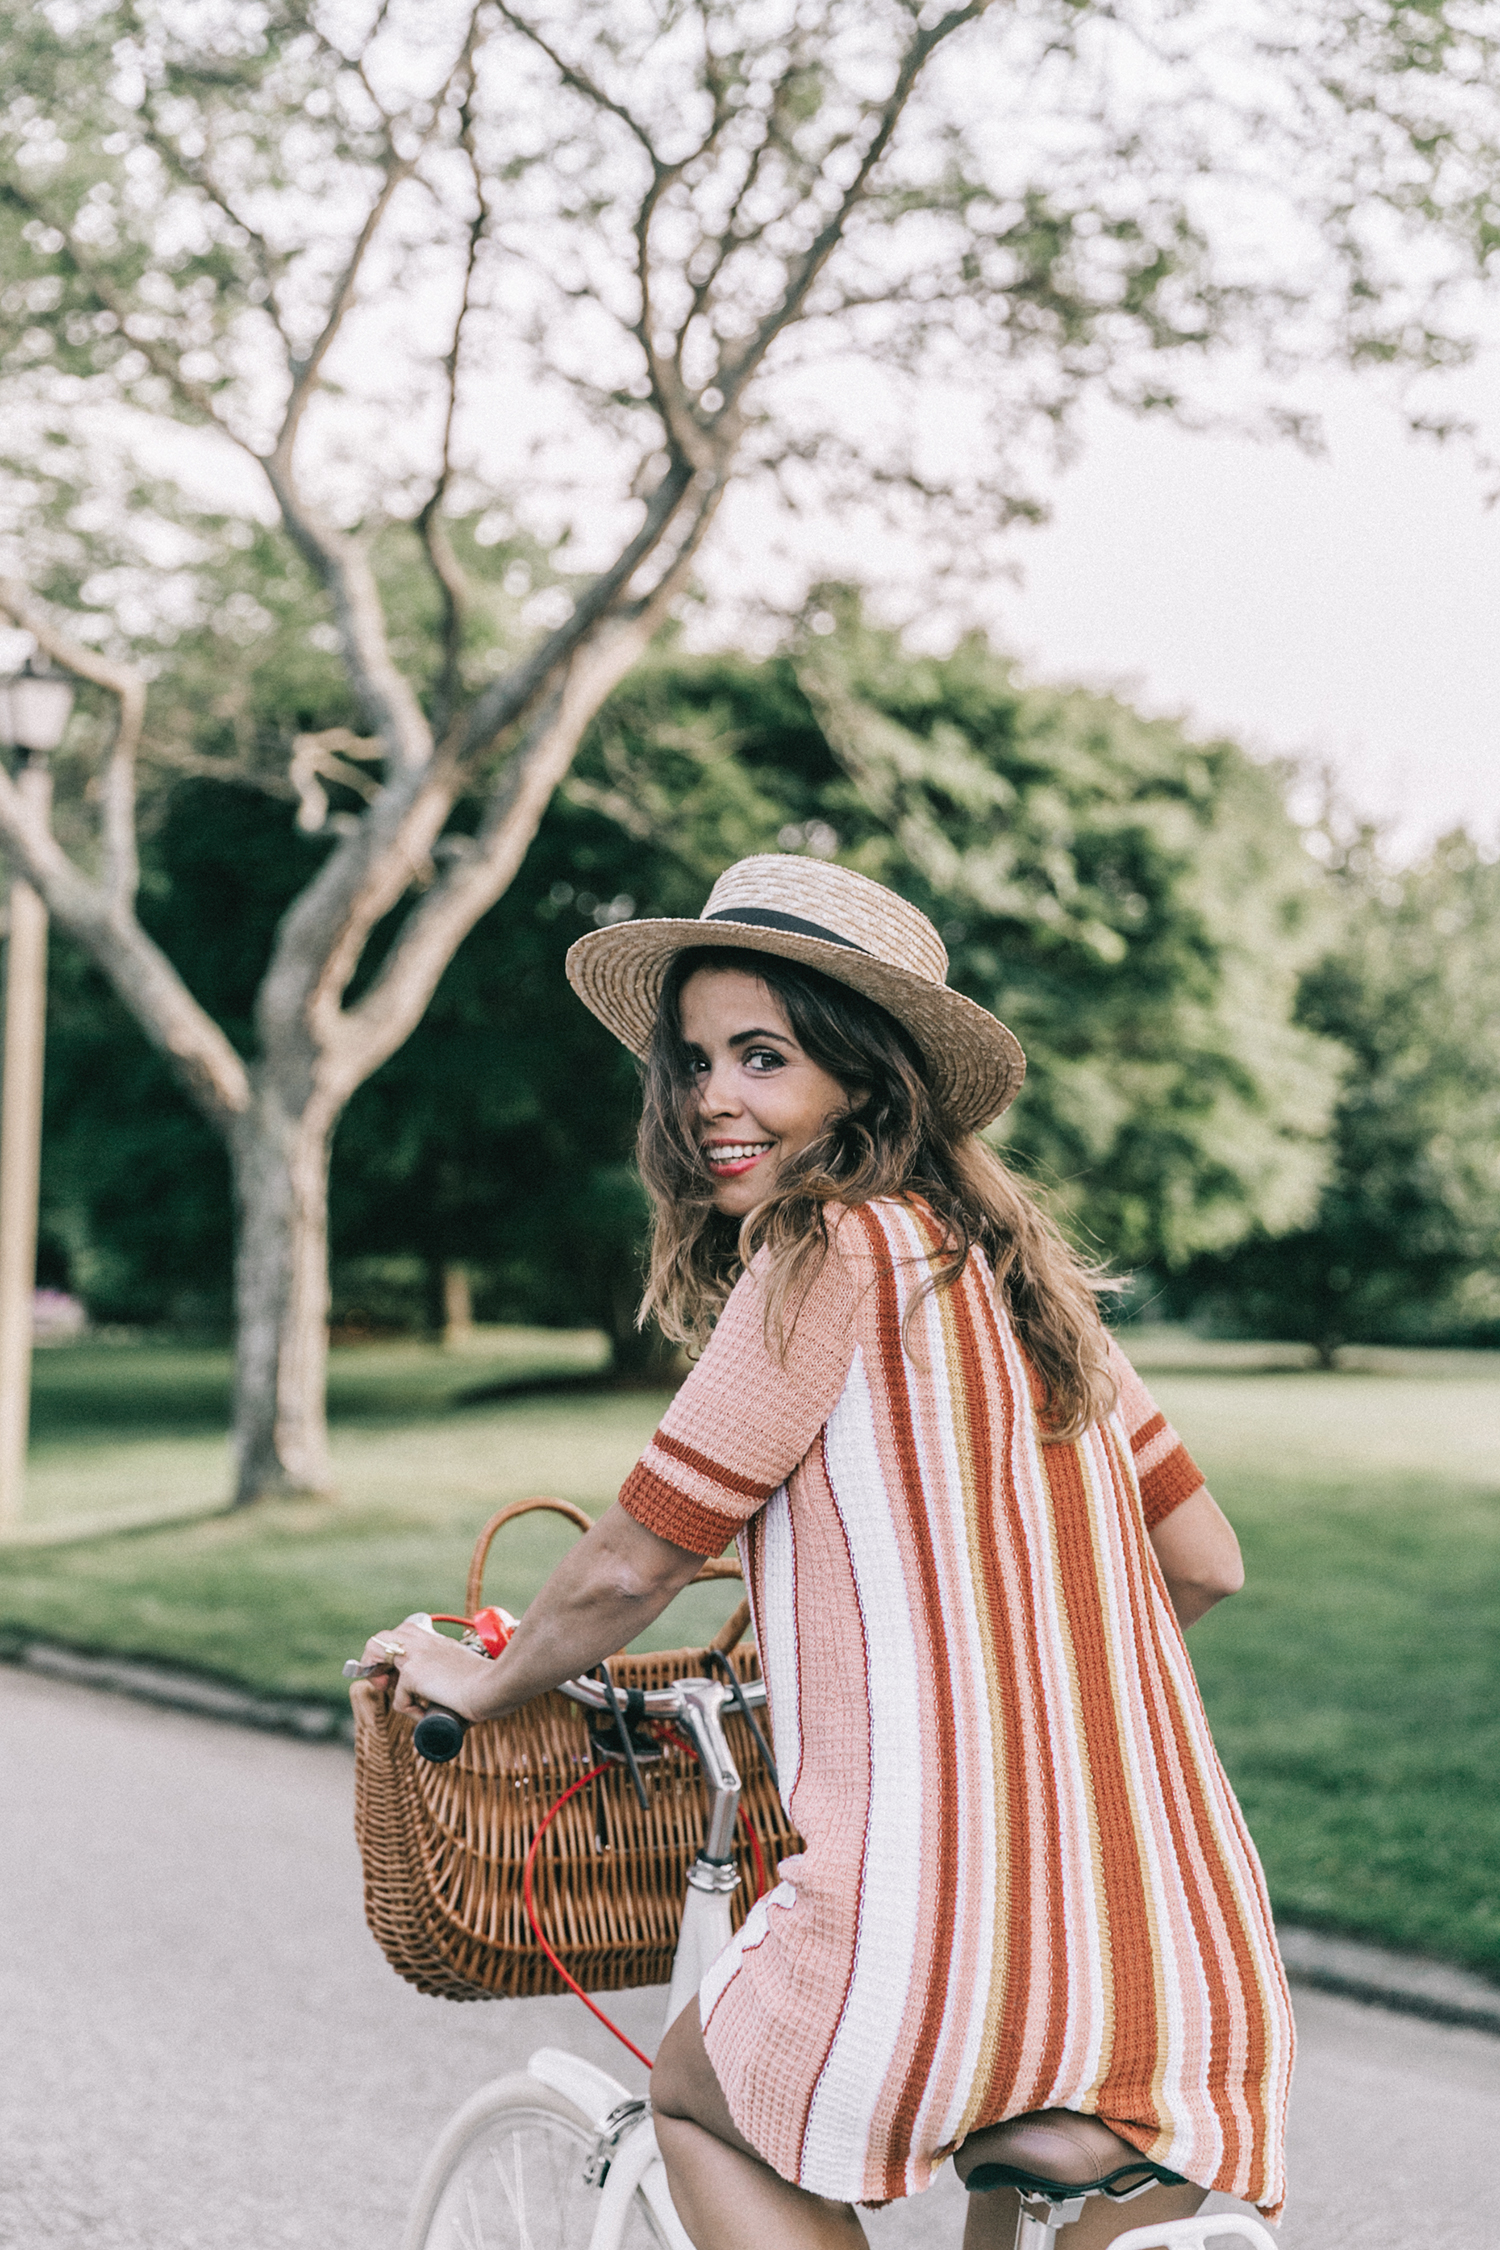 Revolve_in_The_Hamptons-Revolve_Clothing-Collage_Vintage-Free_People_Lace_Dress-Knitted_Dress-Soludos_Espadrilles-Canotier-Hat-Outfit-76